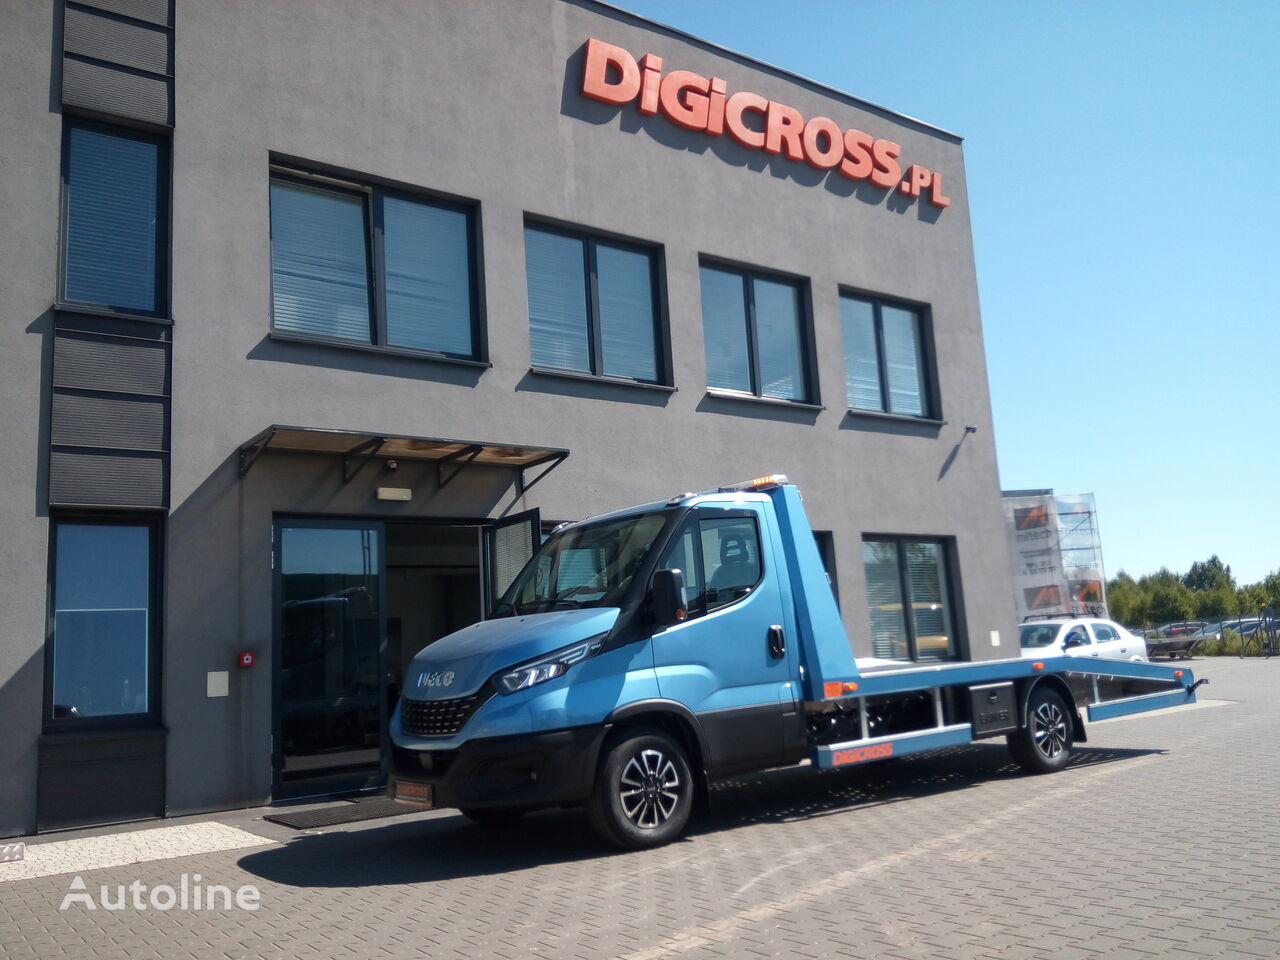 new IVECO 35S21A8  Digicross  tow truck